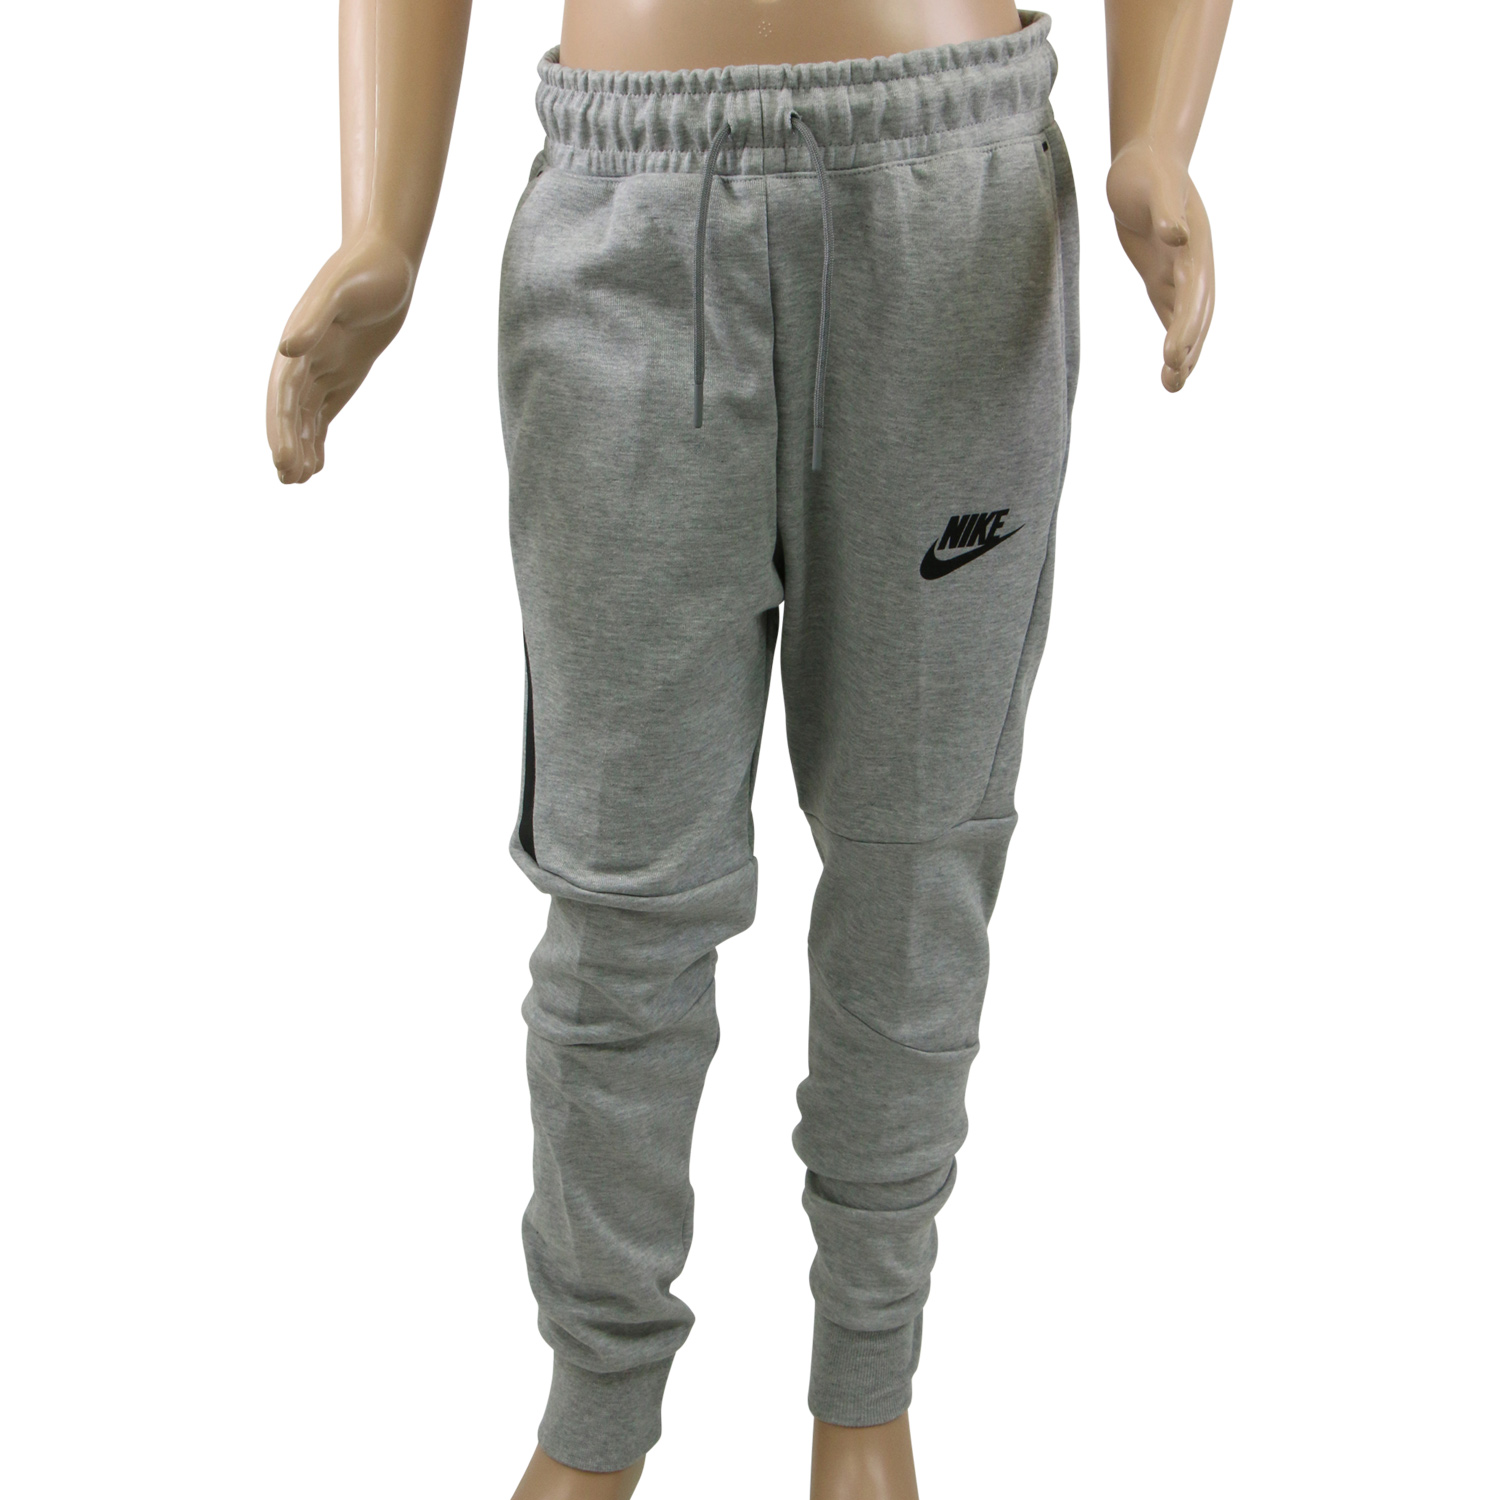 Nike Fleece Kinder Details Zu Nike Sportswear Tech Fleece Hose Gs Jogginghose